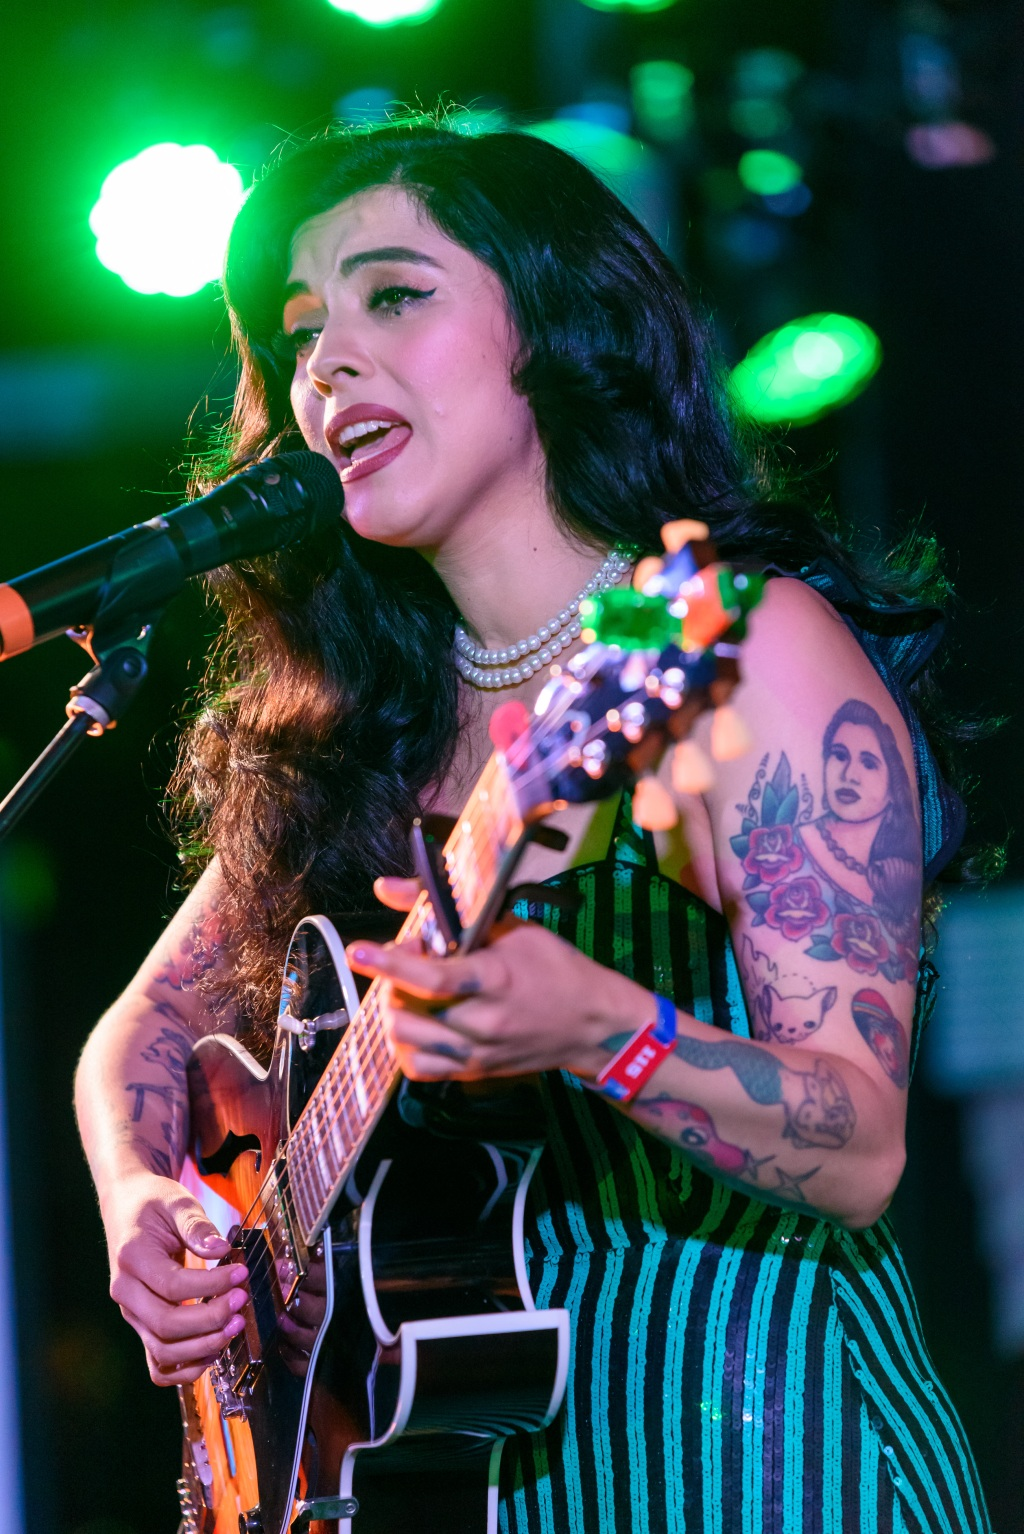 Latin Grammy Award winner and 2018 nominee Mon Laferte performed acoustic renditions of songs from her breathtaking new album, 'Norma.'